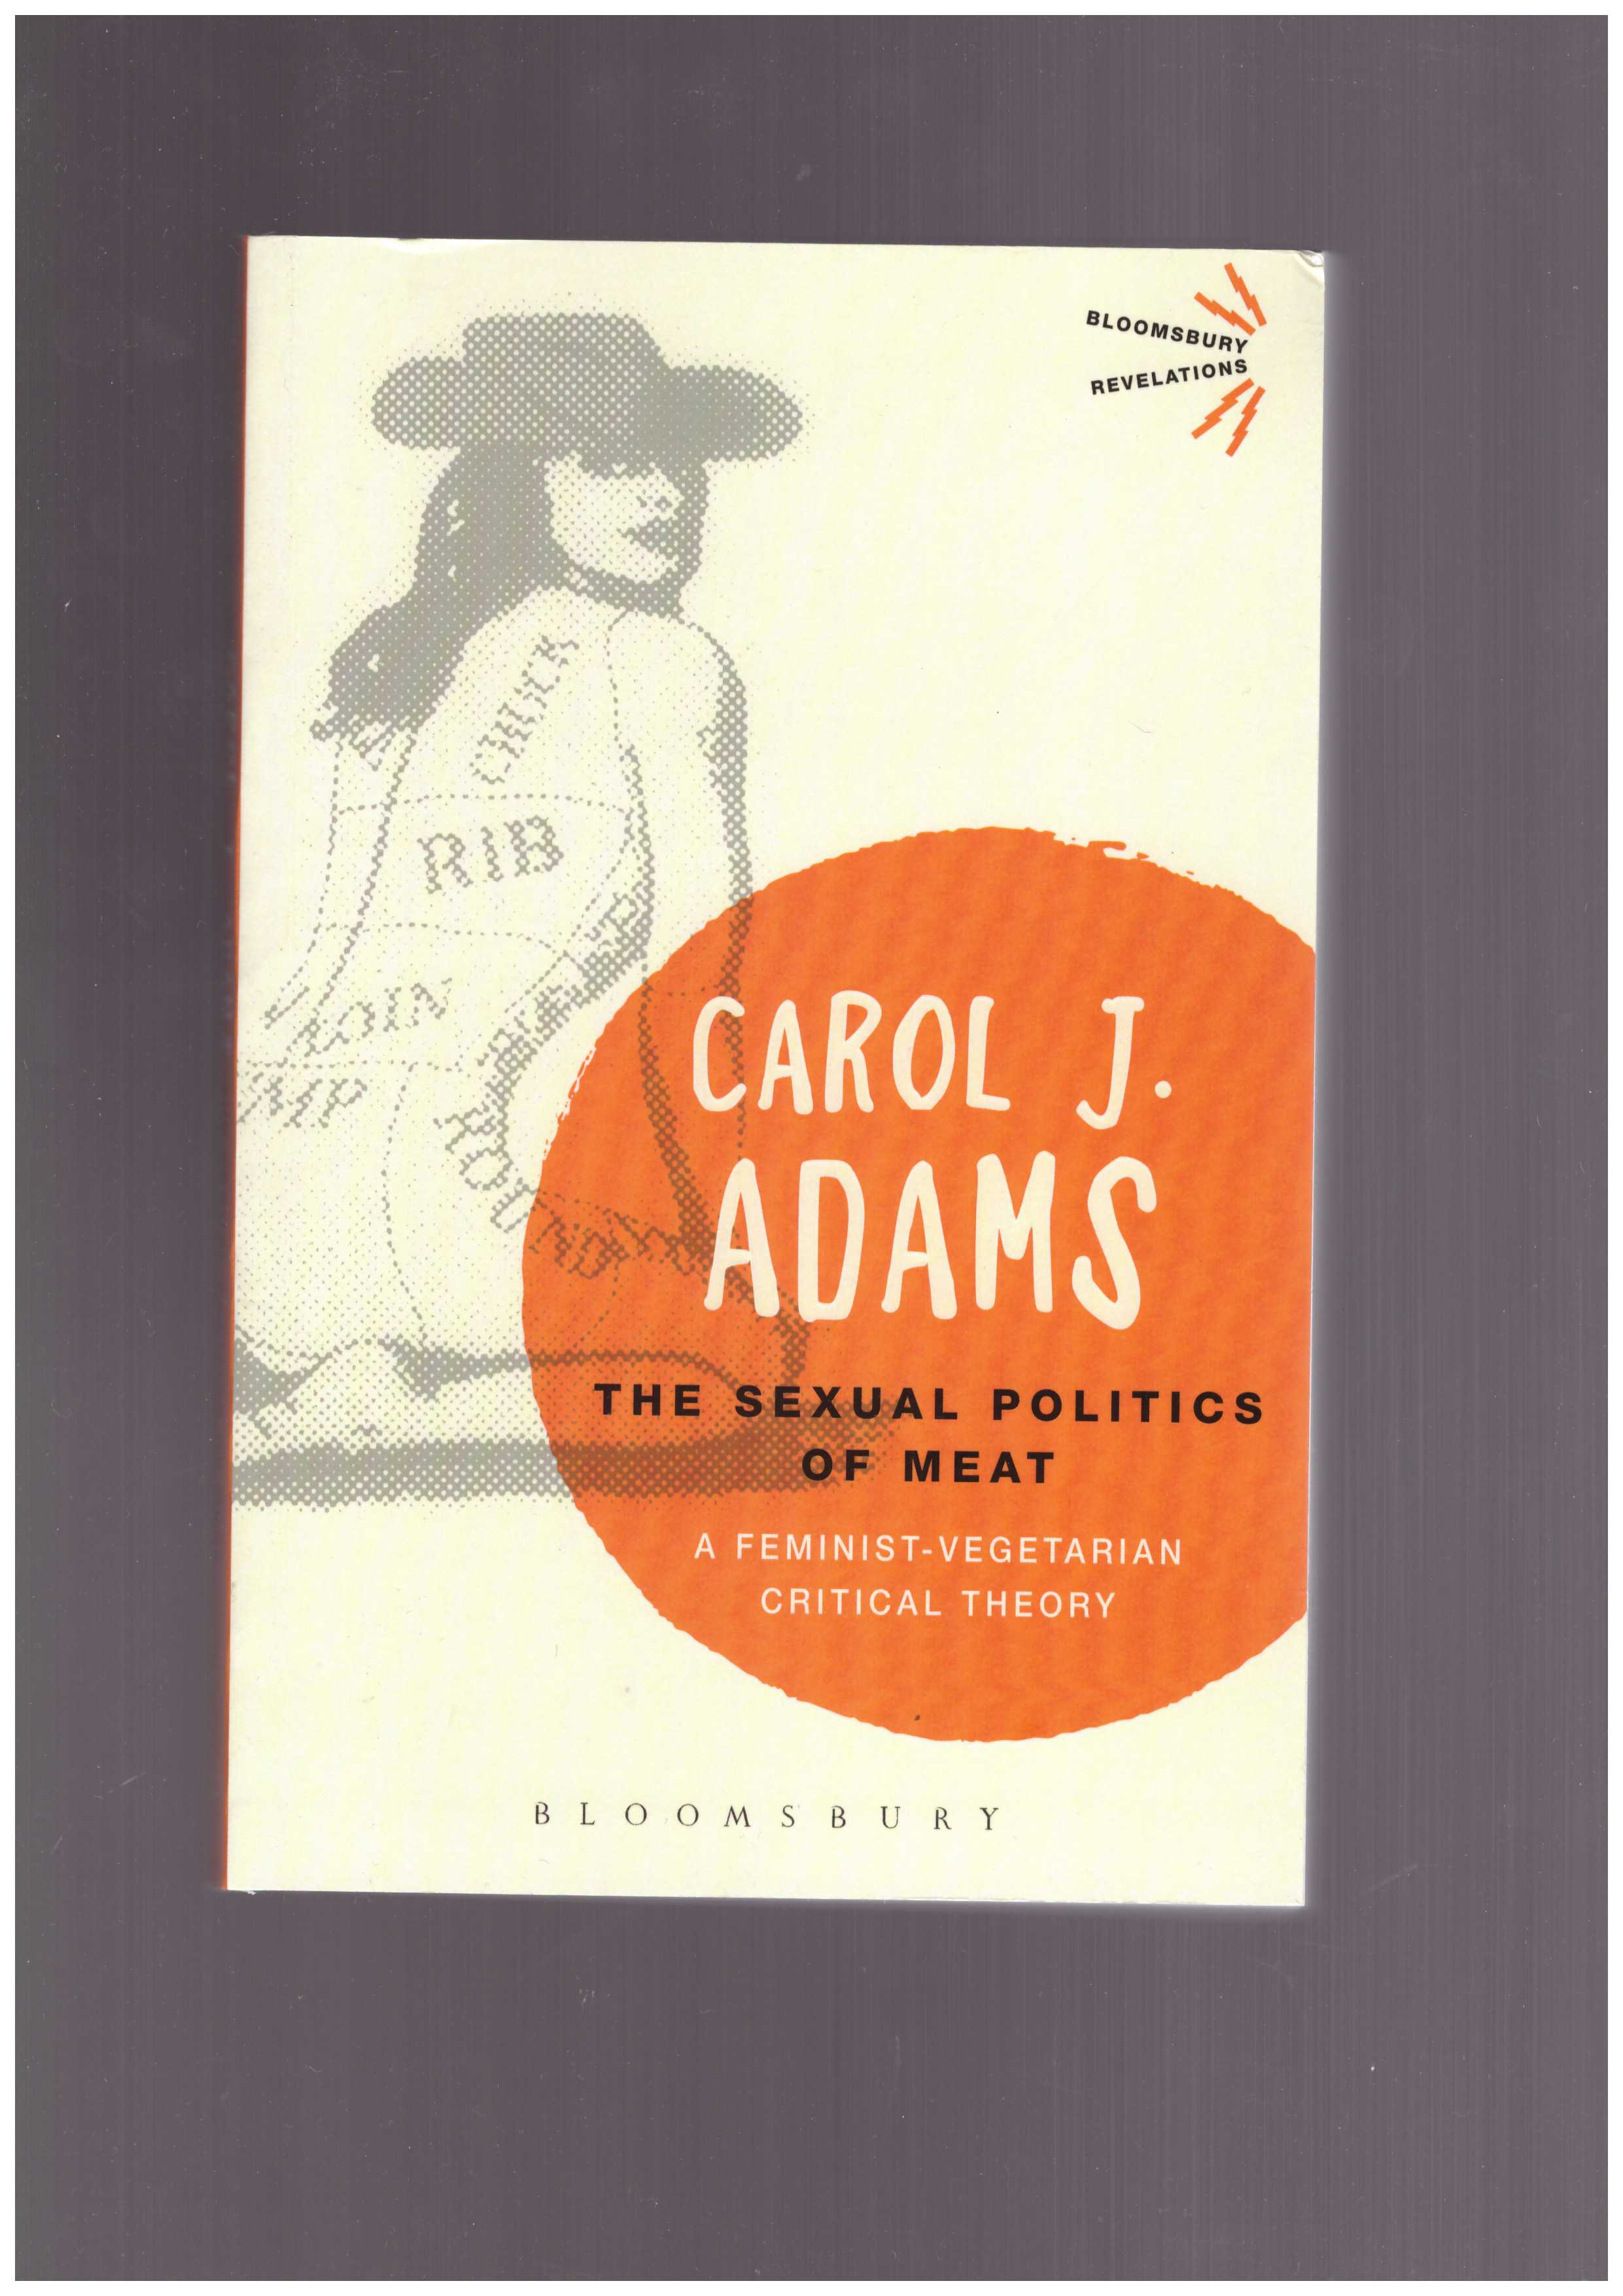 ADAMS, Carol J.  - The Sexual Politics of Meat. A Feminist-Vegetarian Critical Theory